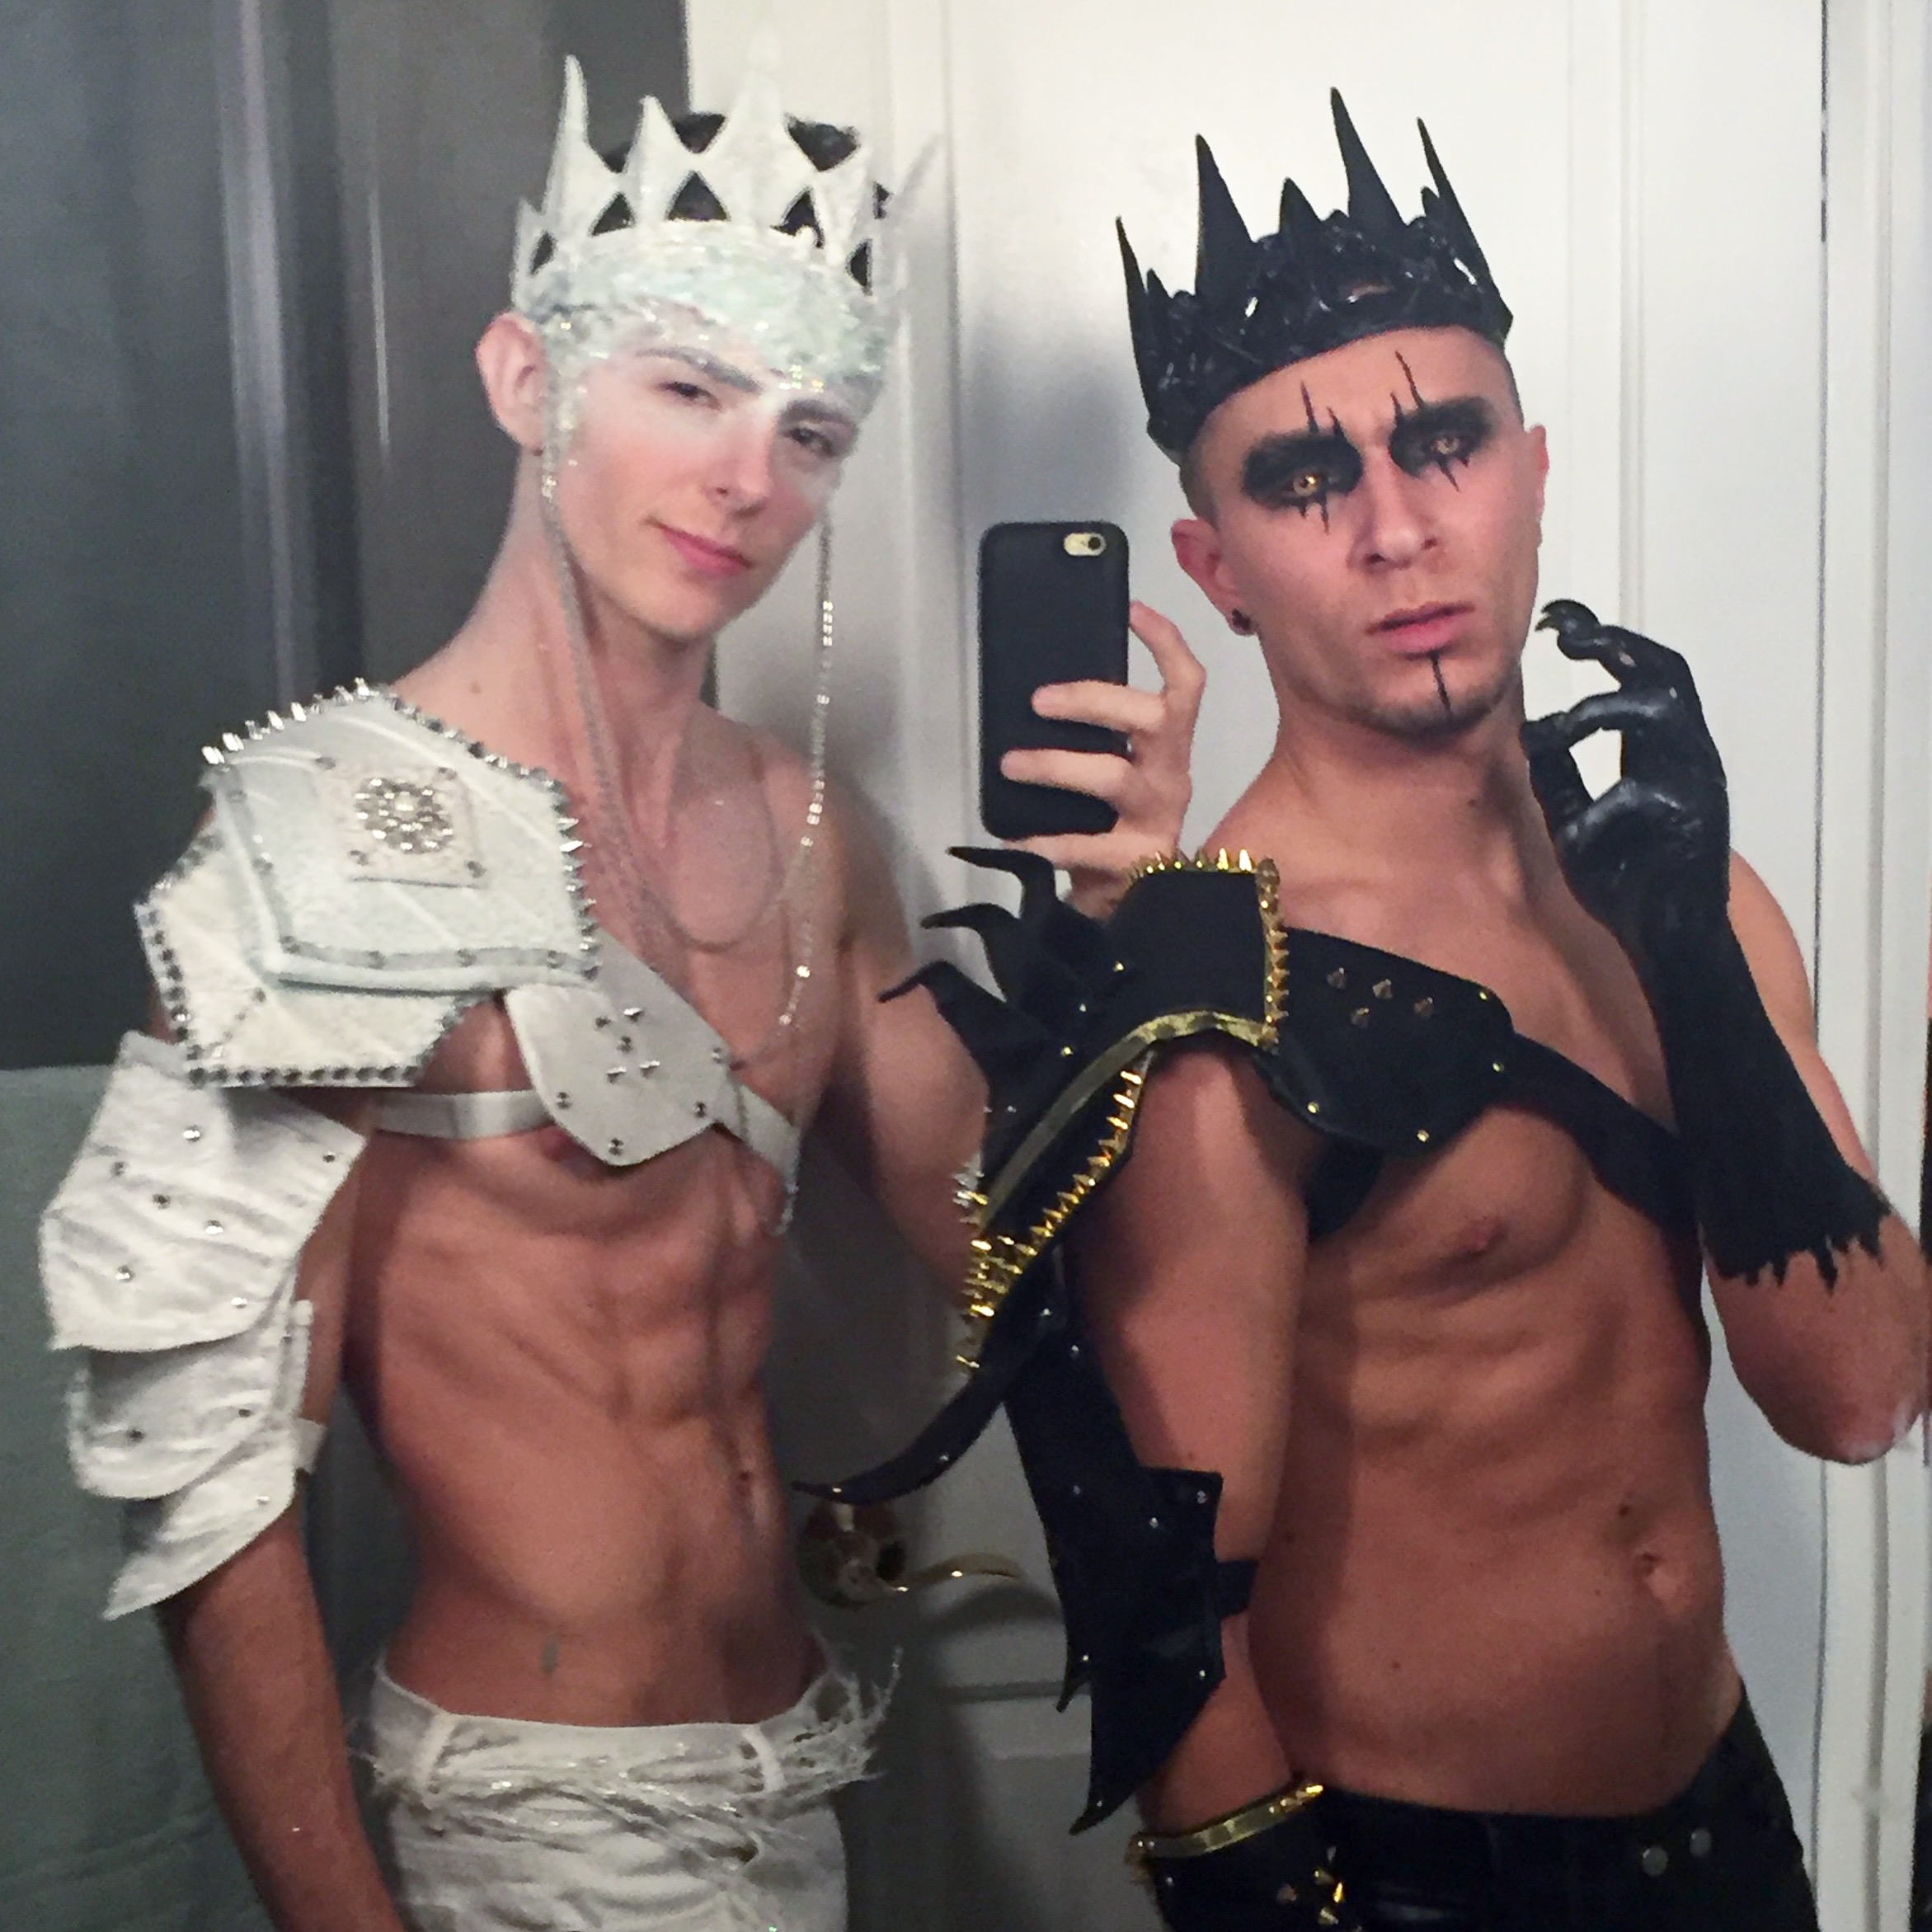 Gay Halloween Costume Ideas.The Key To Gay Halloween Costumes With Photos Handyman Health